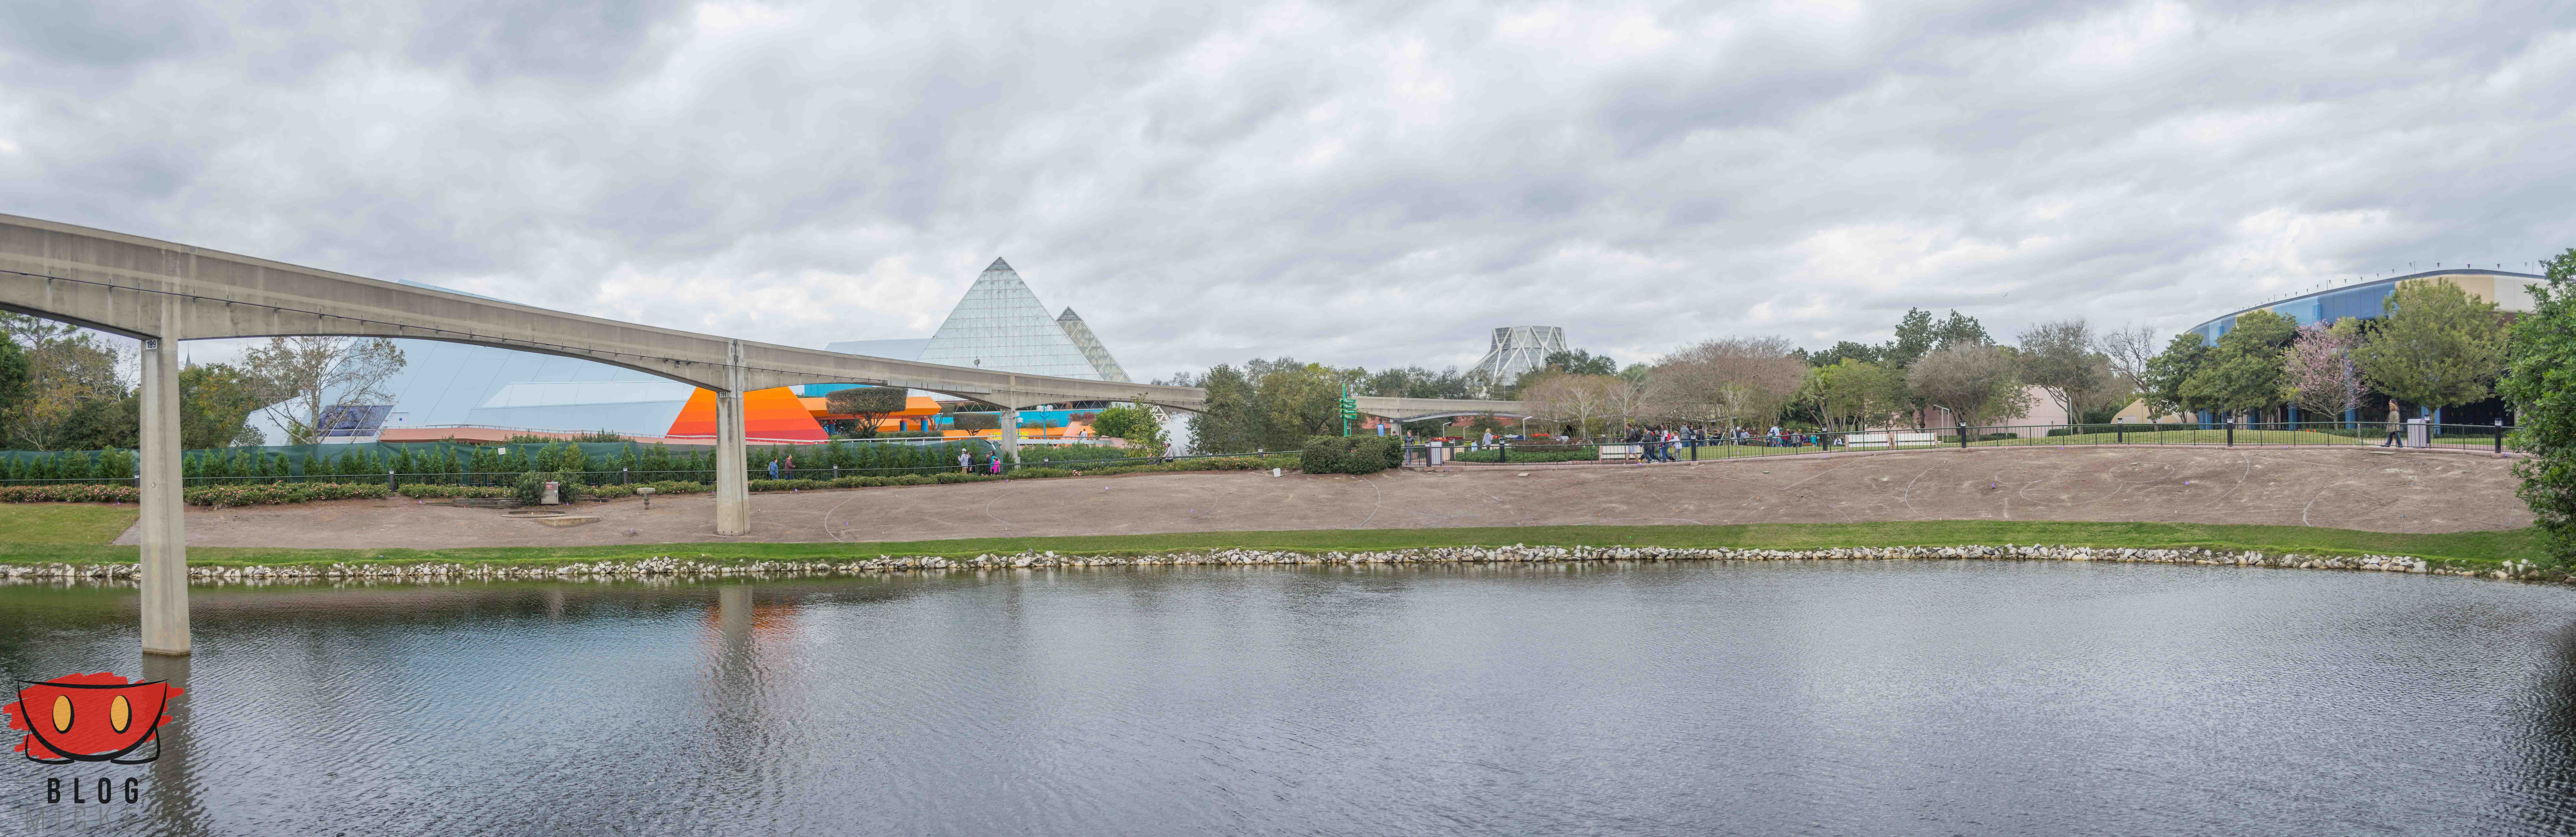 EpcotFlowerandGarden_02092016-6